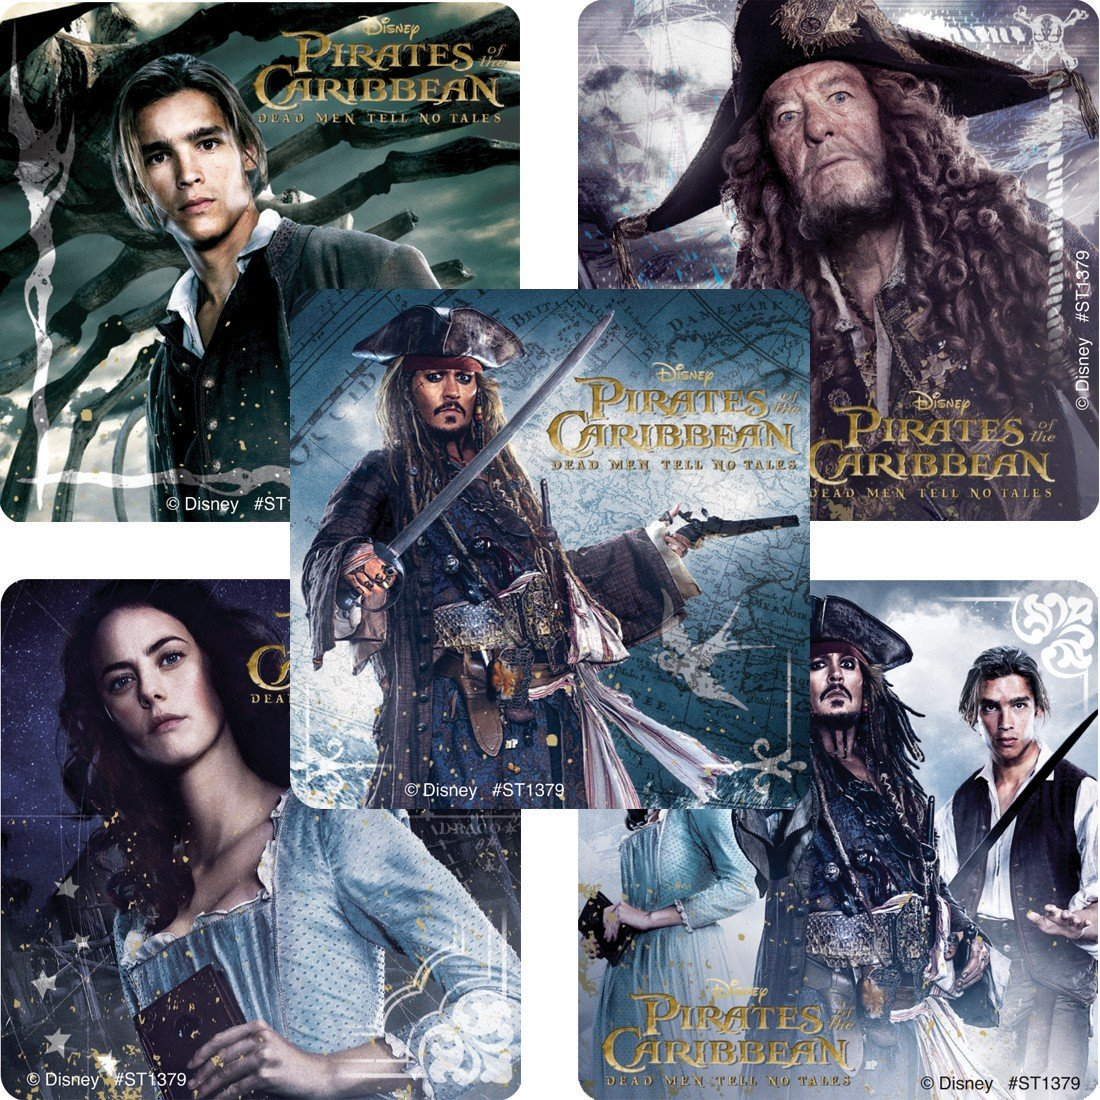 Pirates of The Carribean: Dead Men Tell No Tales 2017 Movie Party Supplies Cutlery /& Stickers Standard Party Pack Amscan Cups Disney Pirates of The Caribbean Party Pack Seats 8 Napkins Plates